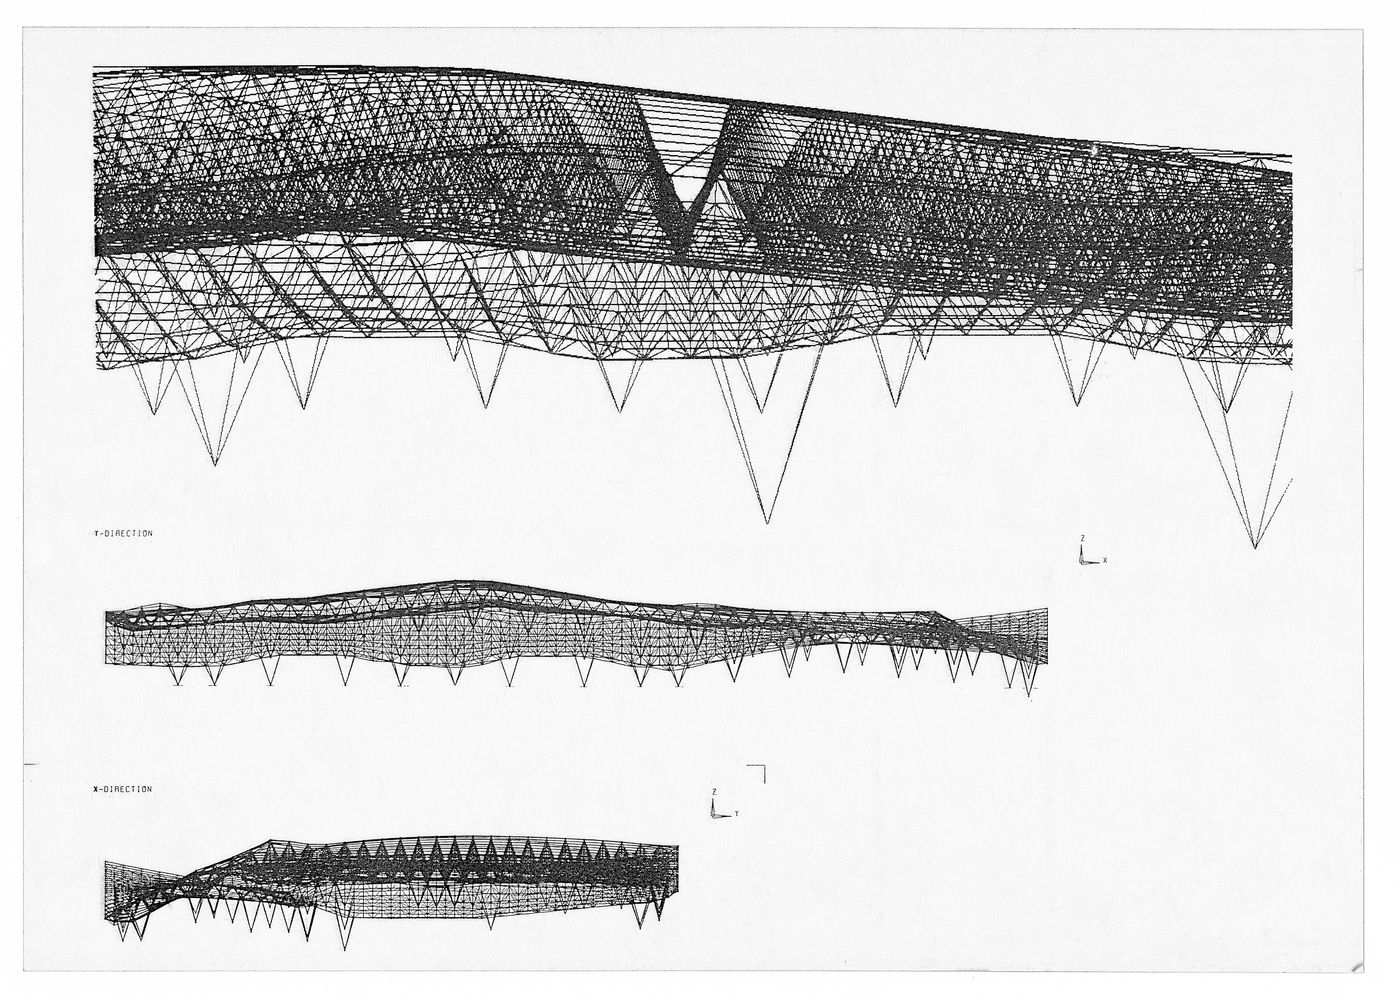 Computer-generated images showing deformation of the roof for the Odawara Municipal Sports Complex, Odawara, Kanagawa, Japan